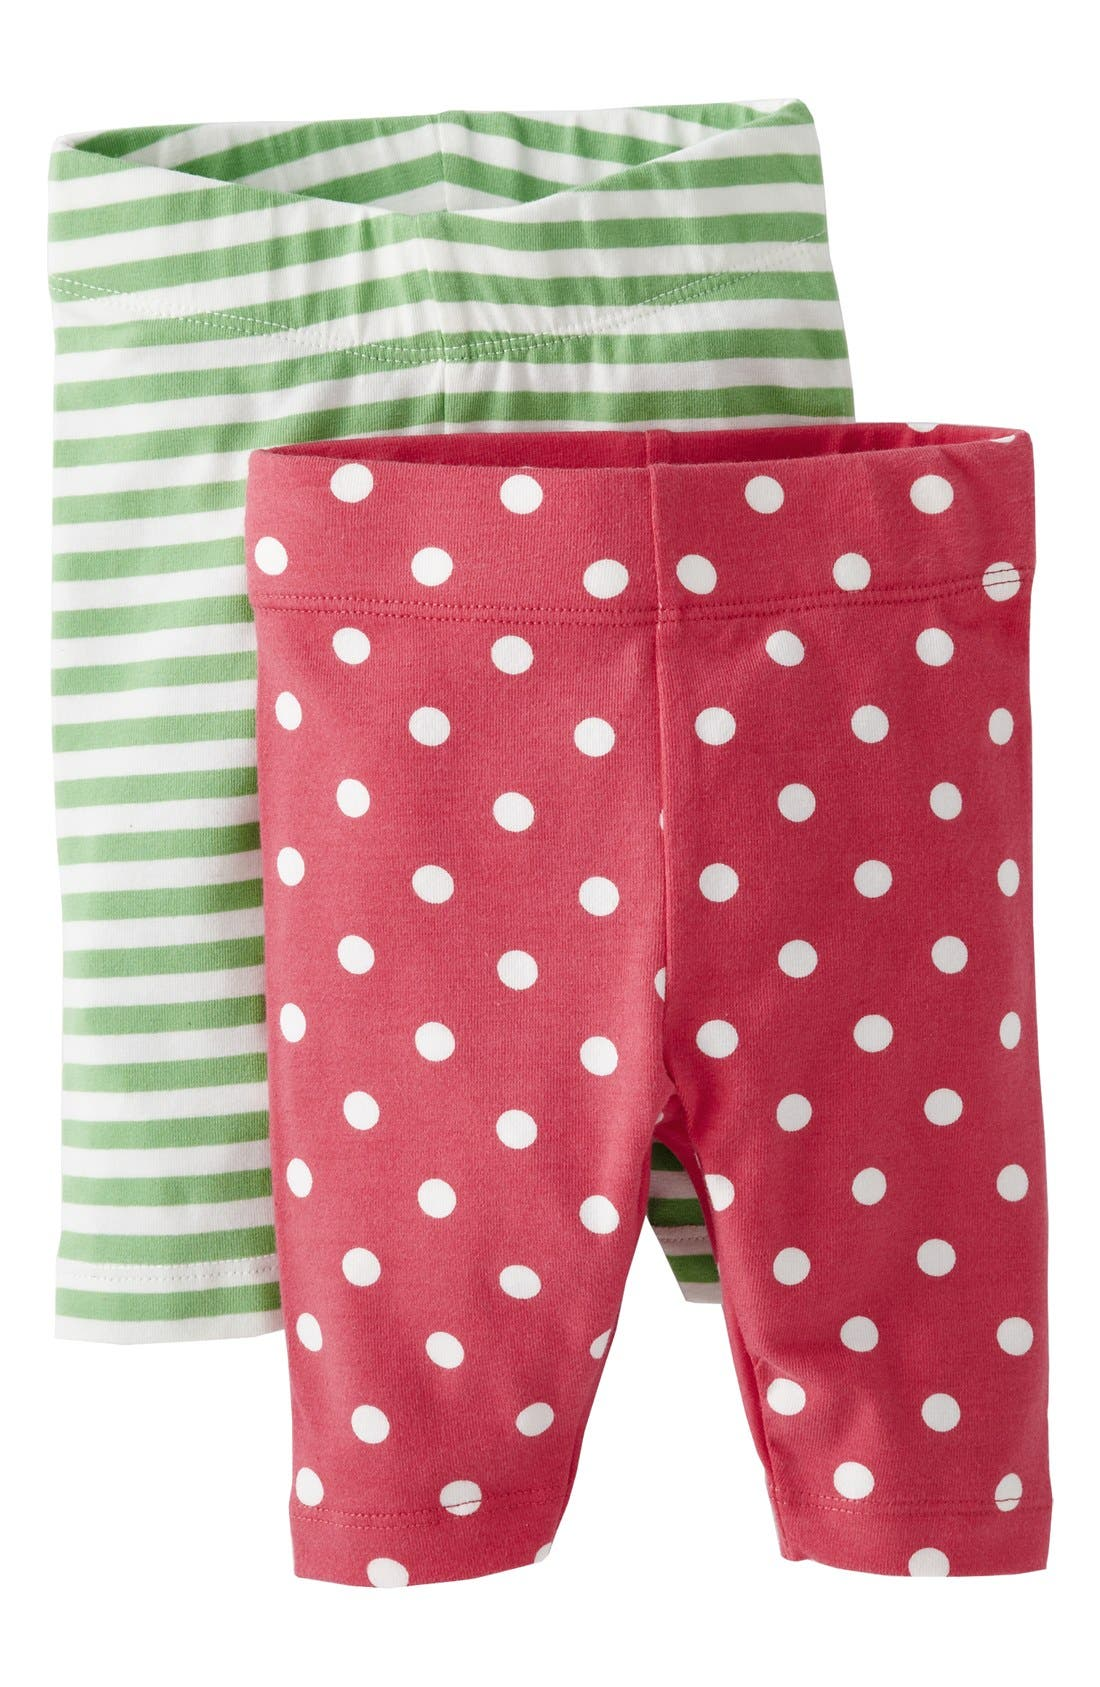 Alternate Image 1 Selected - Mini Boden Print Leggings (Baby Girls) (Set of 2)